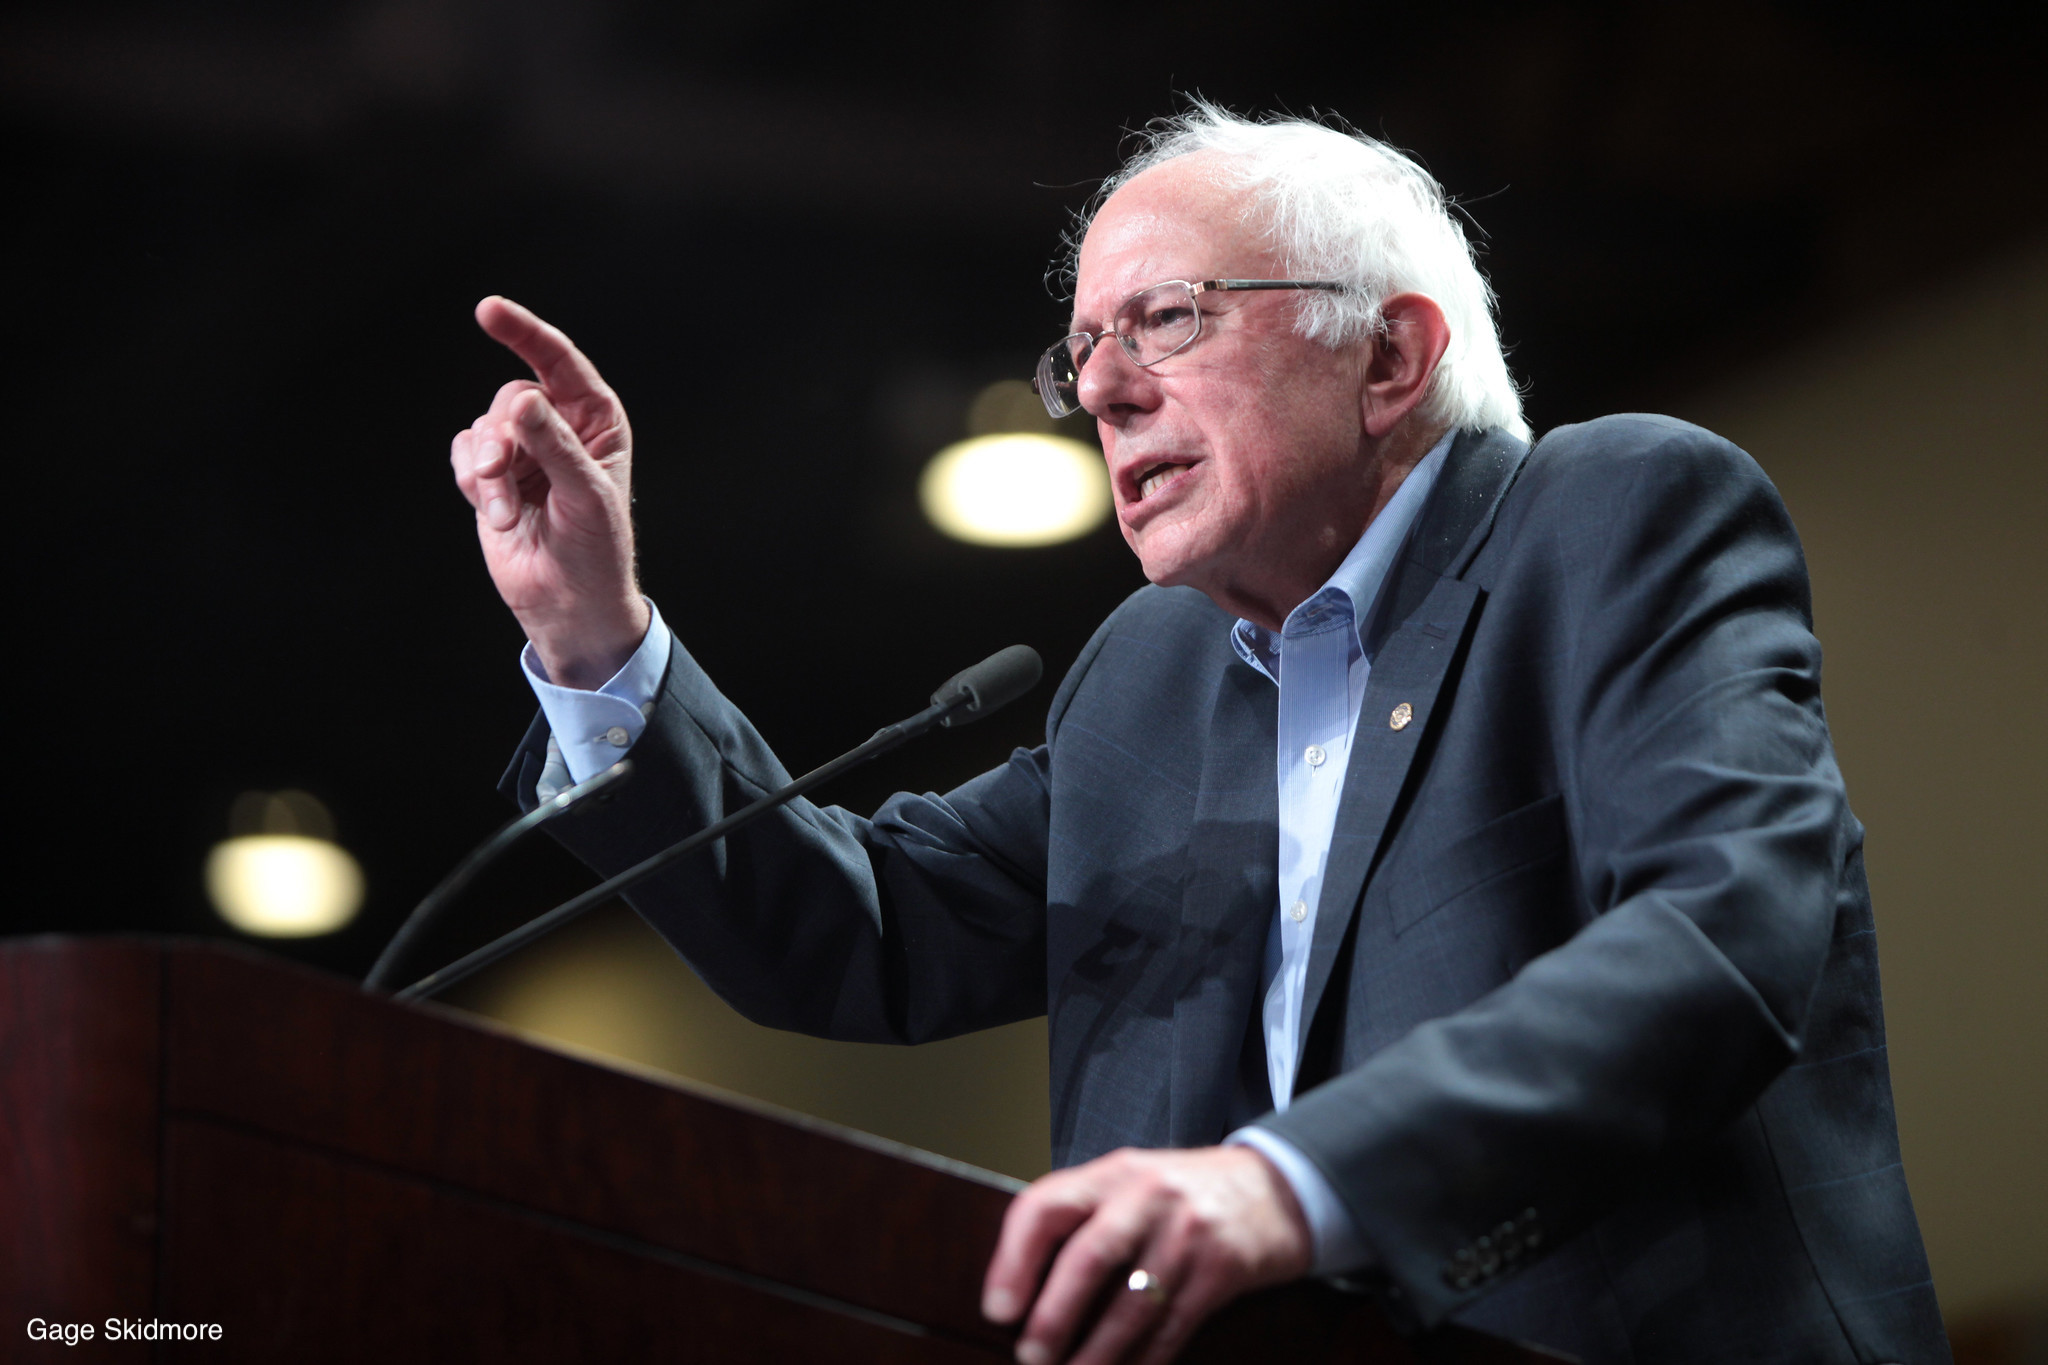 bernie sanders called out for identity politics, lack of real support for Israel